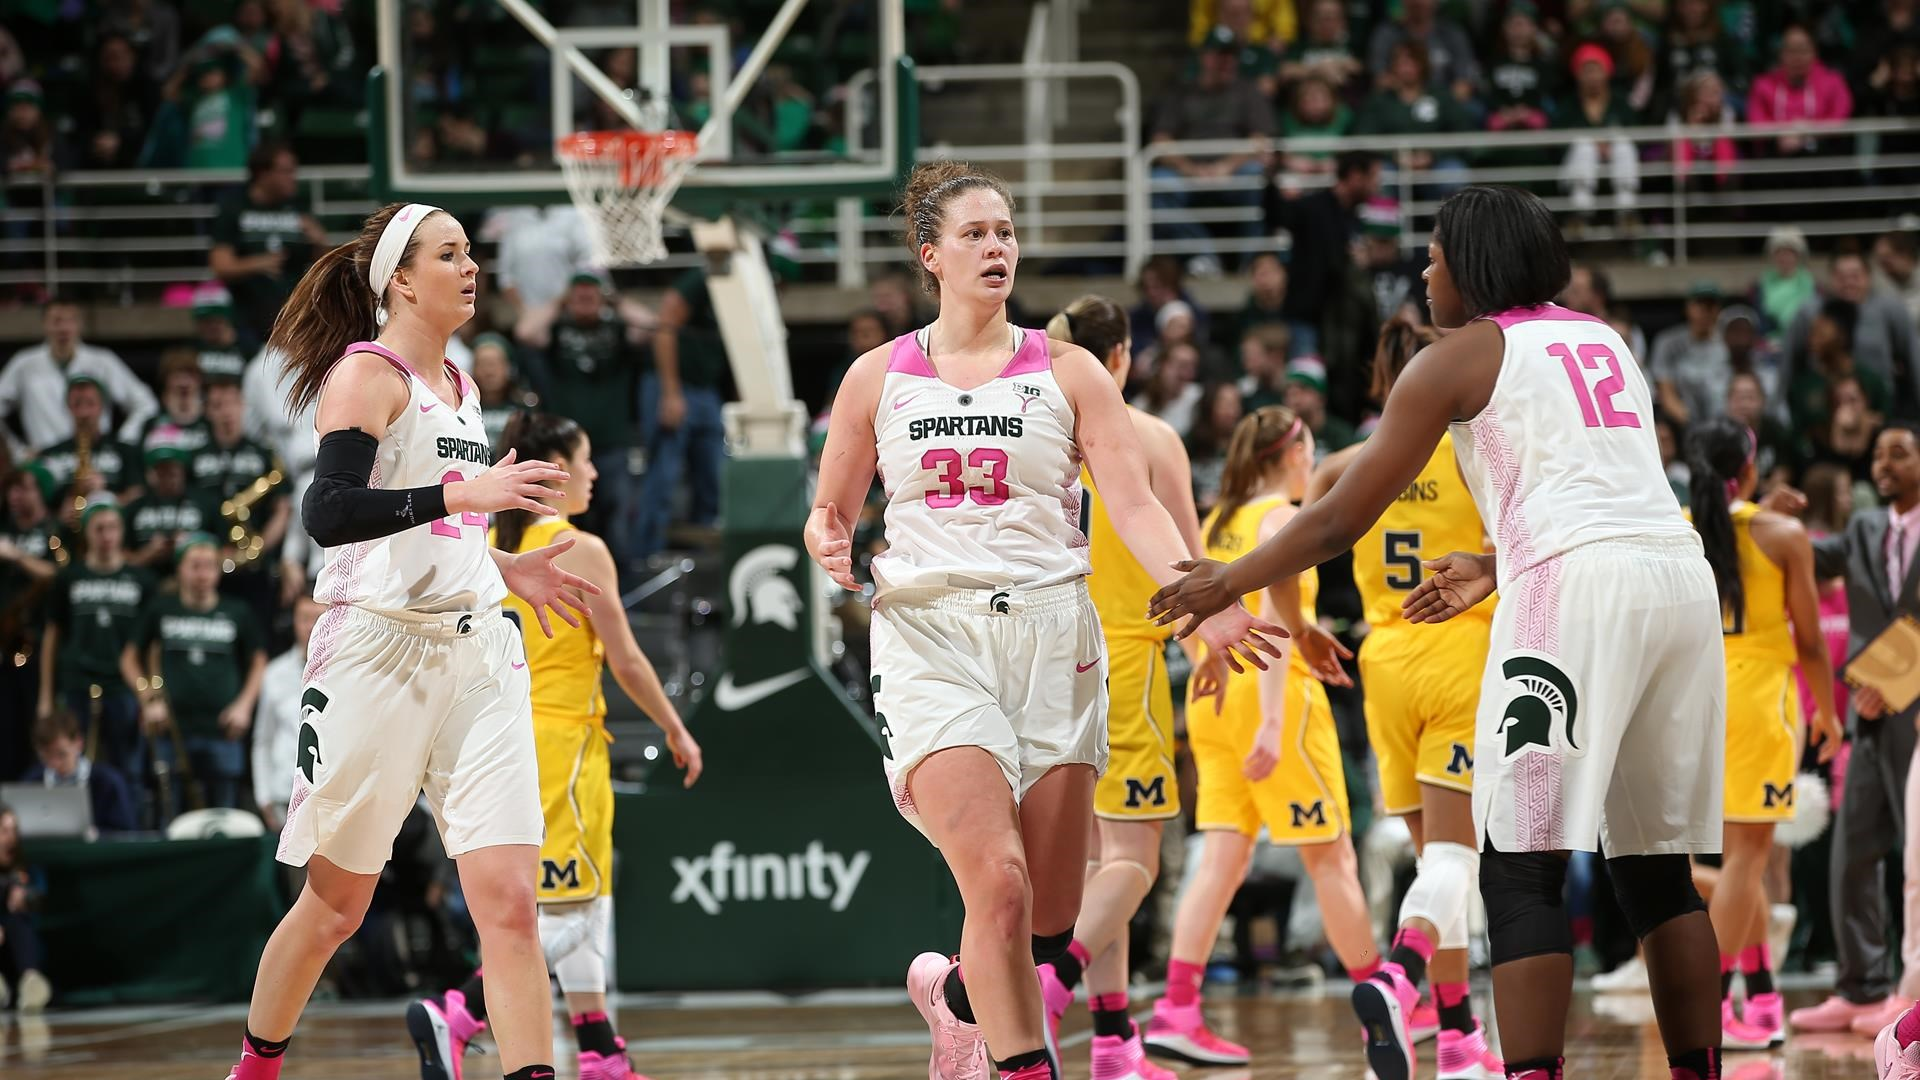 dfc34c13fb41 22 Spartans Host Purdue in Annual Pink Game Sunday - Michigan State  University Athletics